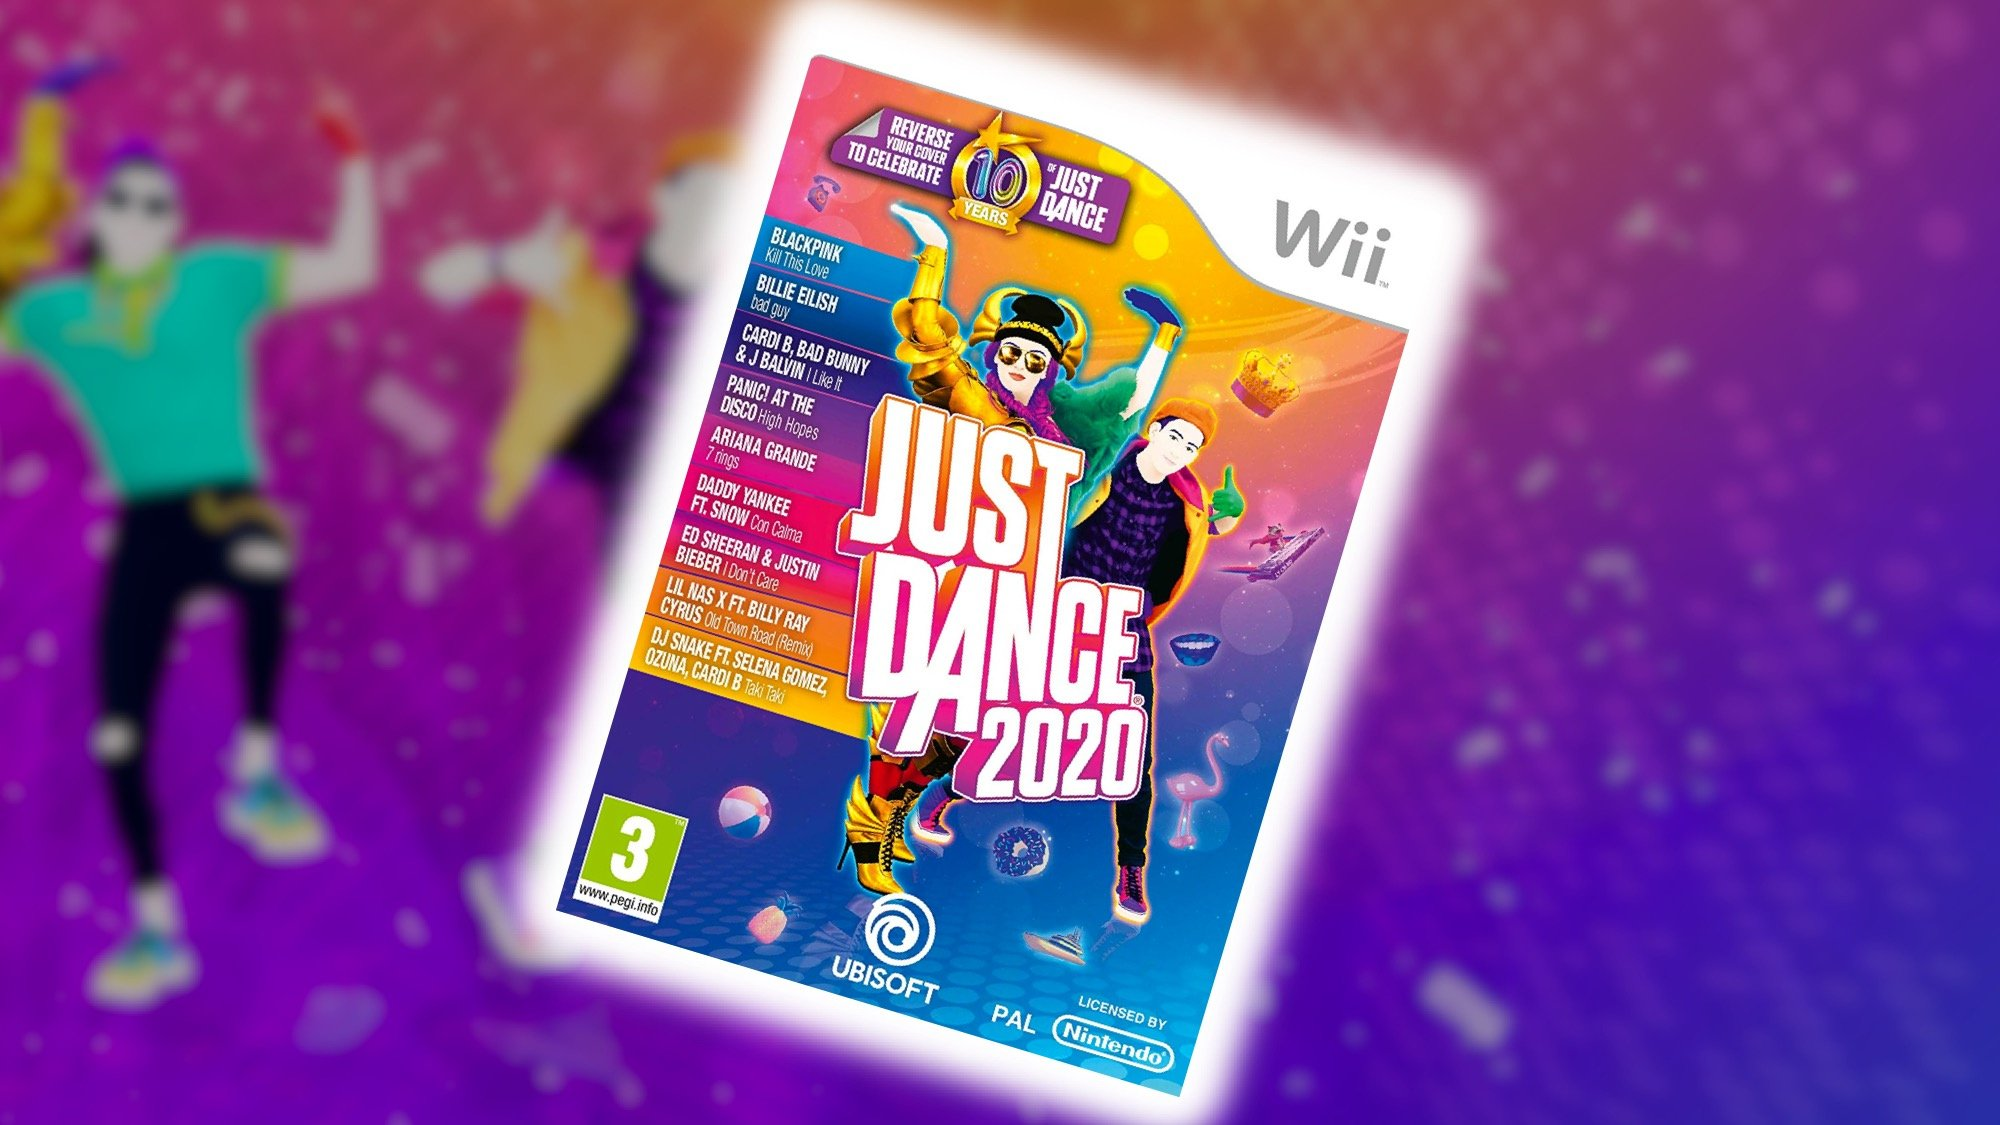 Xbox One Backwards Compatibility List 2020.Just Dance 2020 Sold Better On Wii Than Ps4 Or Xbox One In